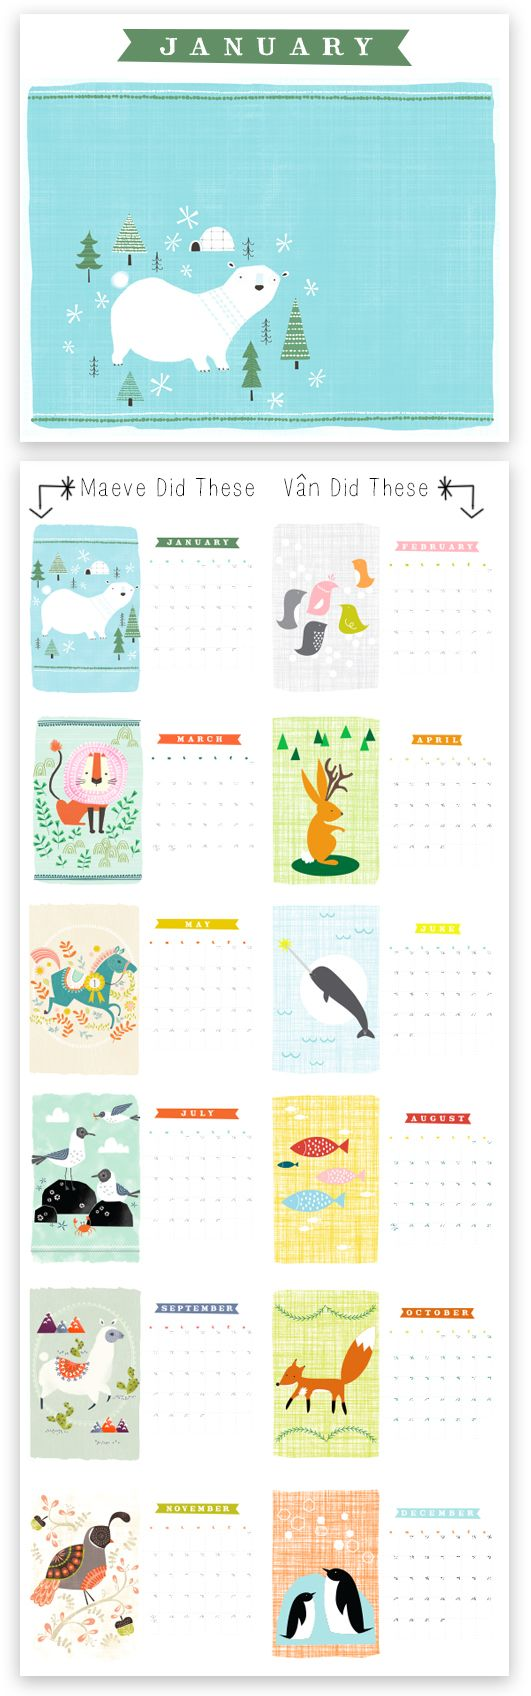 2014 Calendar by Maeve Parker and Vân Tran of http://rhymeswithfun.blogspot.com/ You can visit Maeve's blog to download a free printable version and free desktop wallpapers! www.maeveparker.com